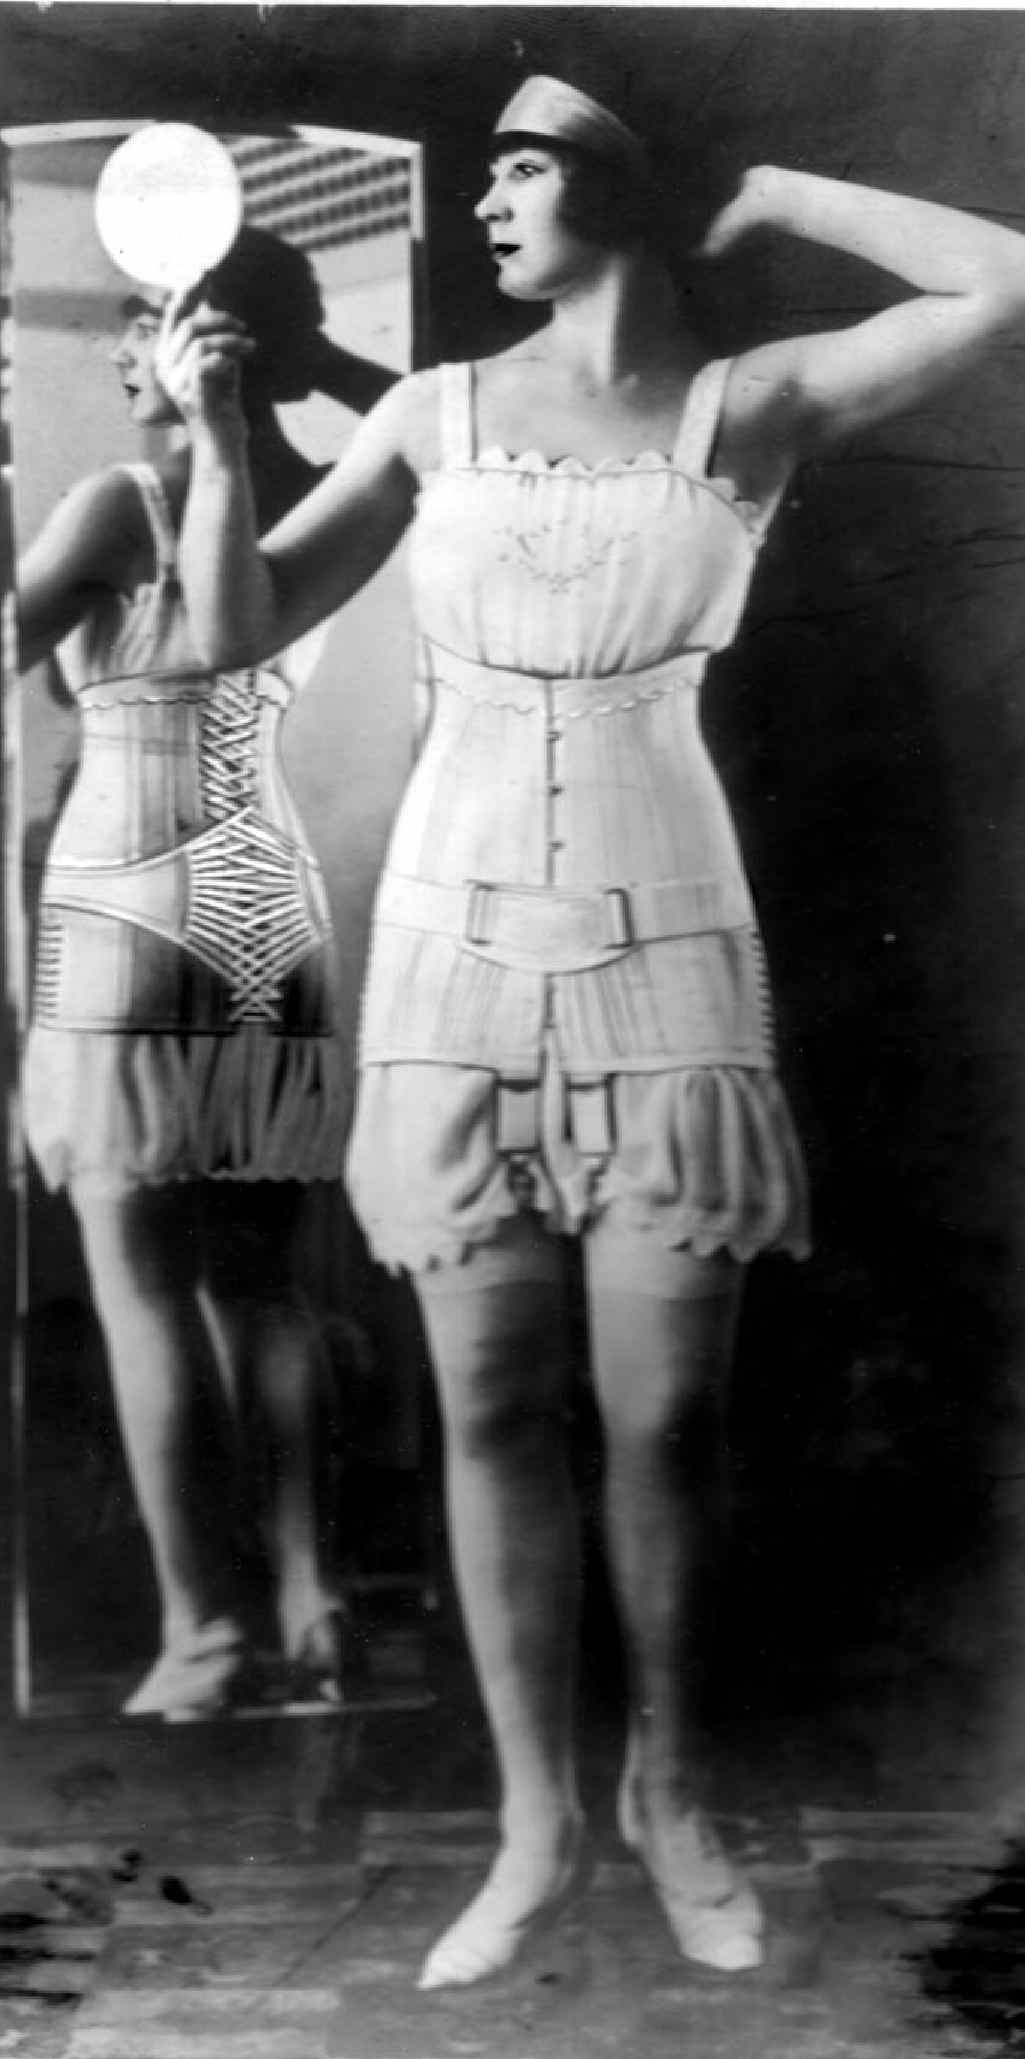 Sarah Jenyns designed corsetry for all women.